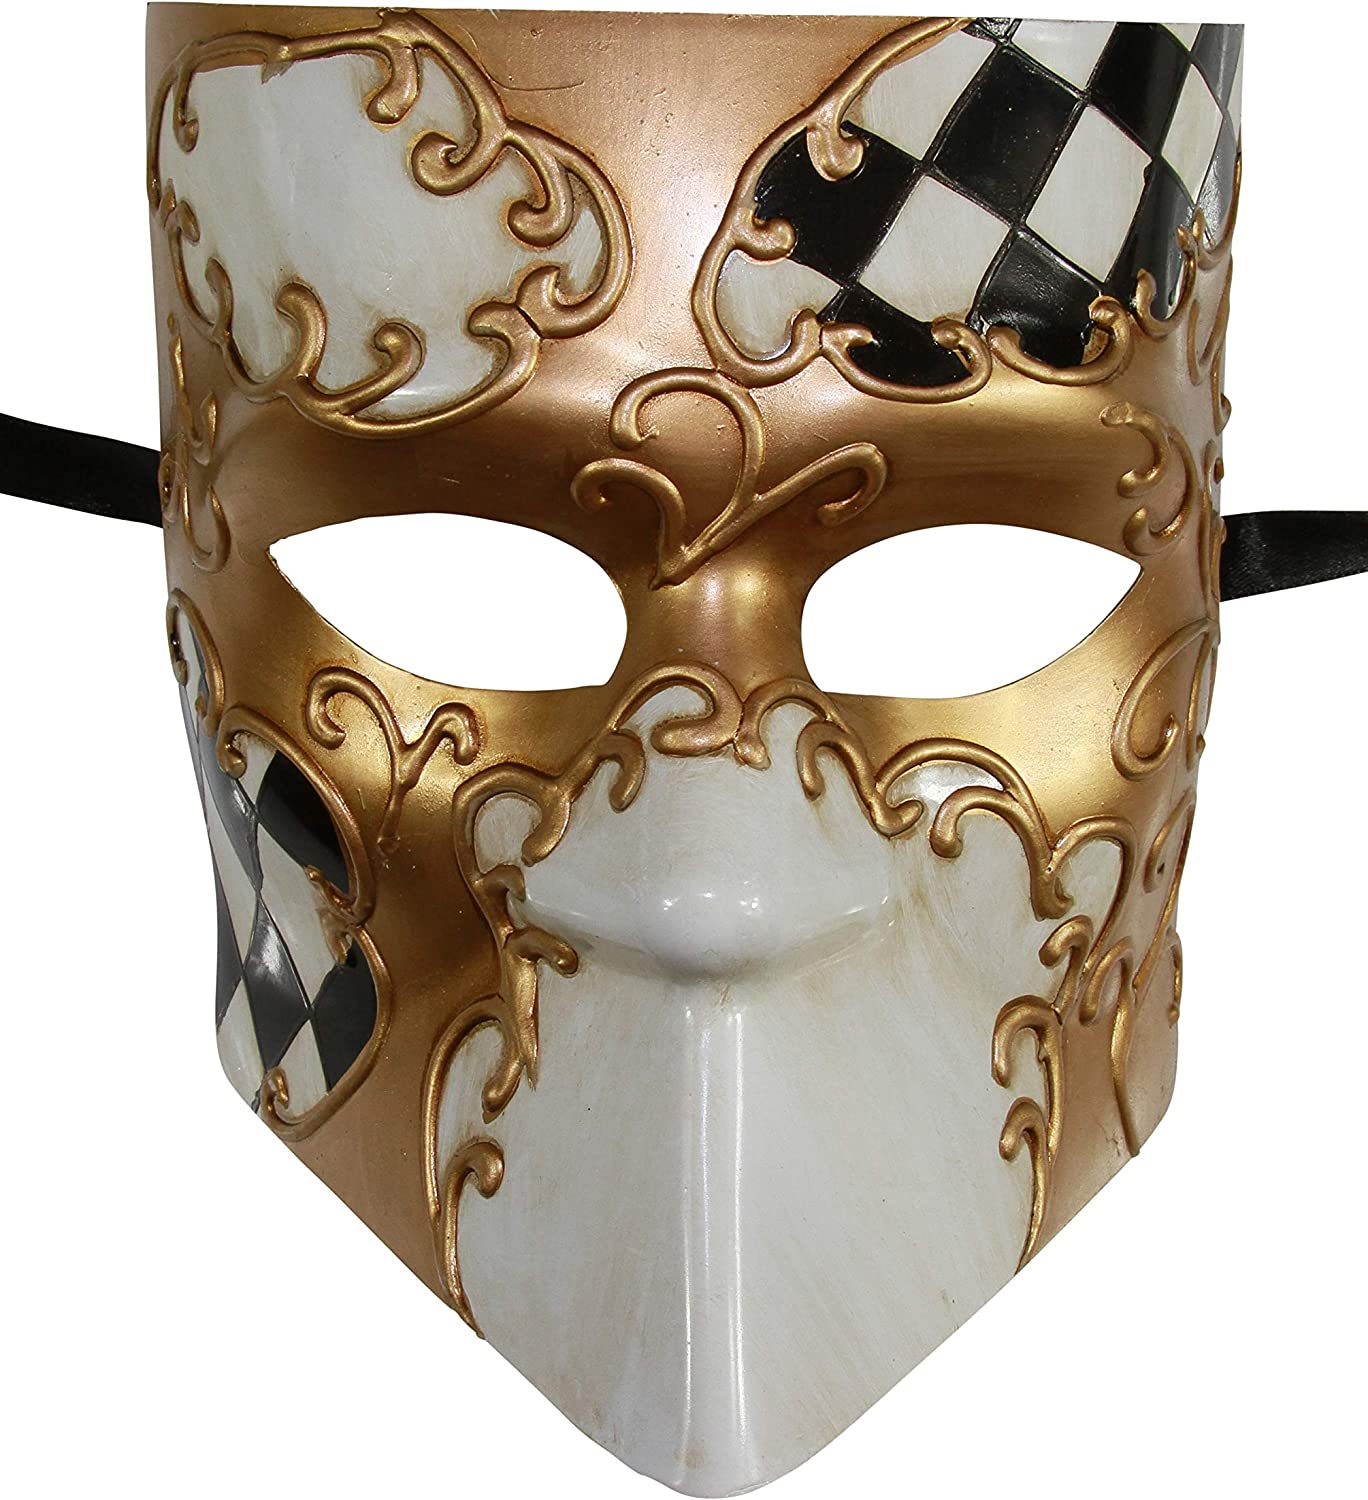 Bauta mask wearable art - Traditional handmade mask : /'Classic golden Bauta/' finished with gold leaf classic